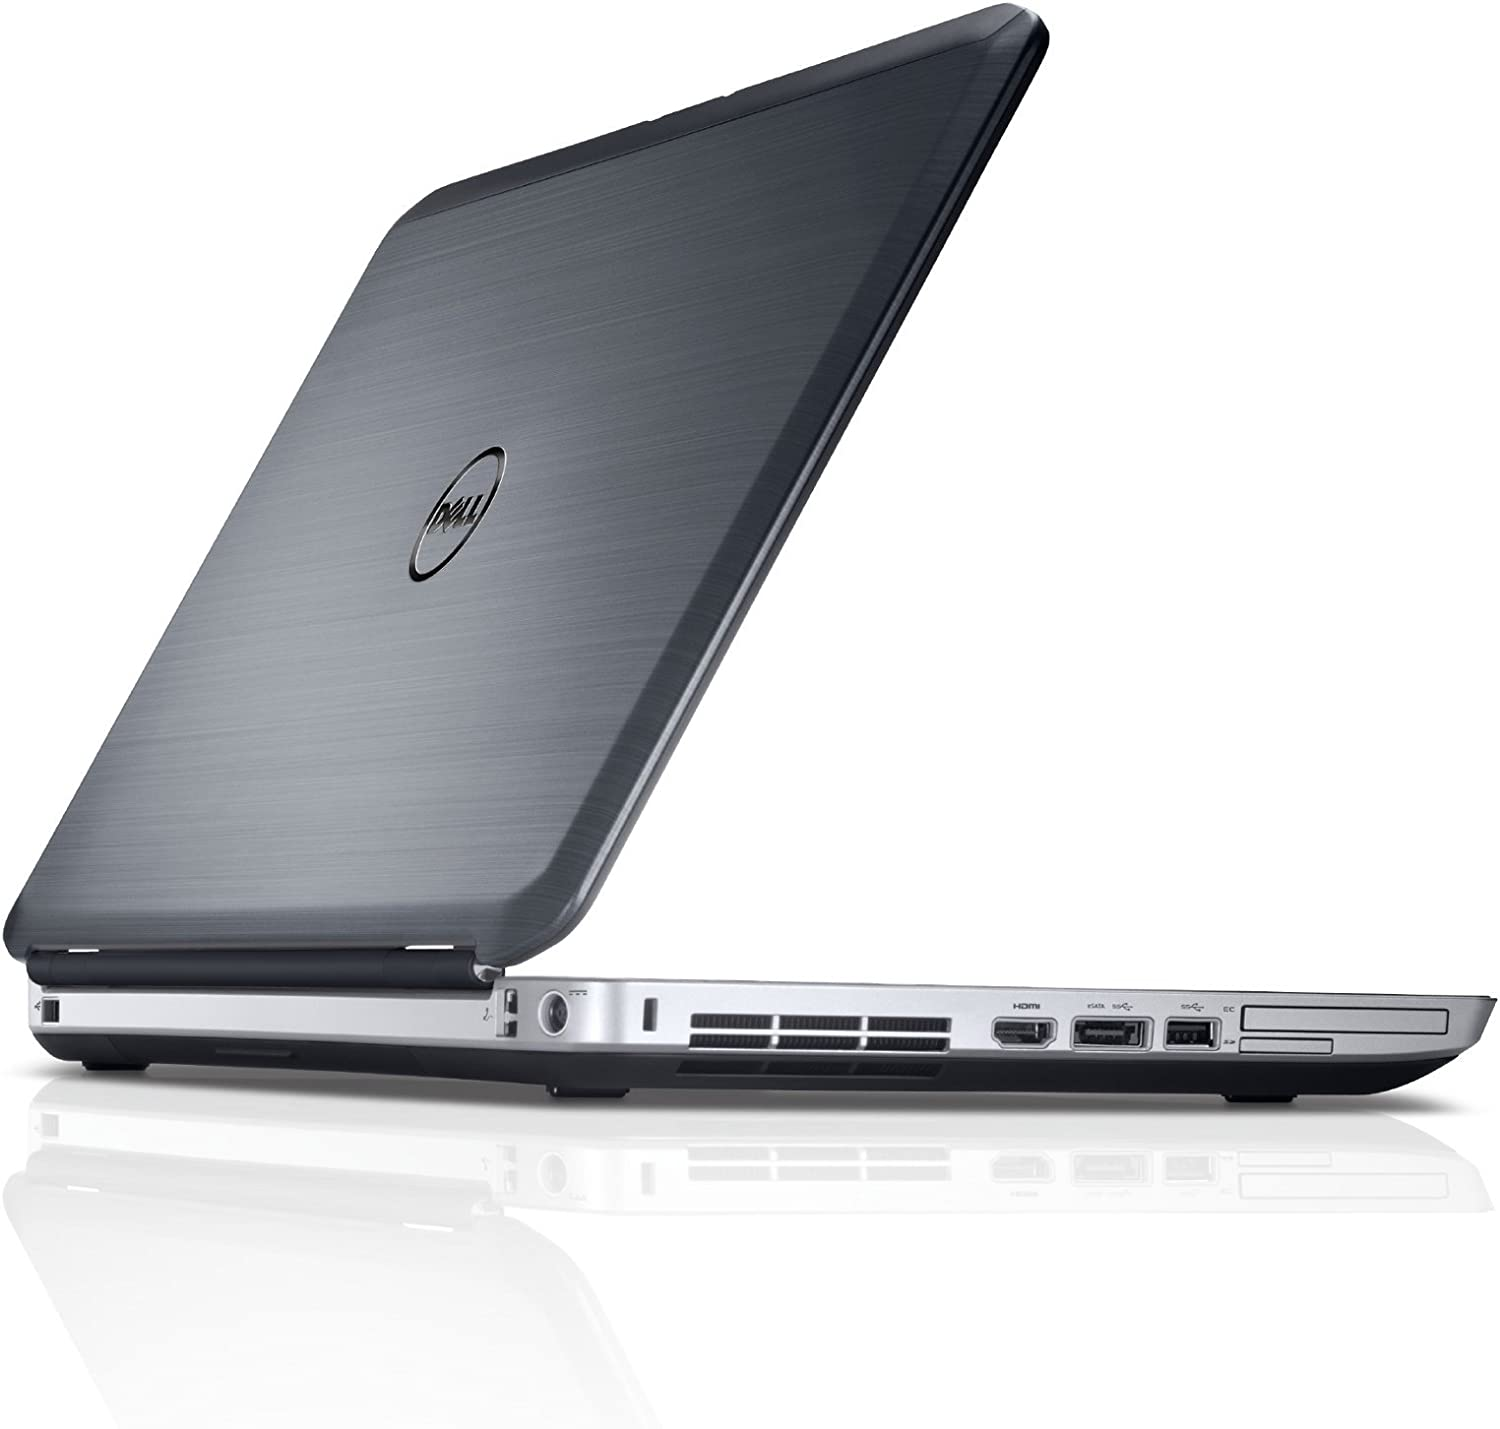 Dell Latitude E5530 15.6 LED Notebook Intel Core i5-3230M 2.60 GHz 4GB DDR3 320GB HDD DVD +/- RW Drive Intel HD Graphics WiFi+Bluetooth Windows 7 Professional